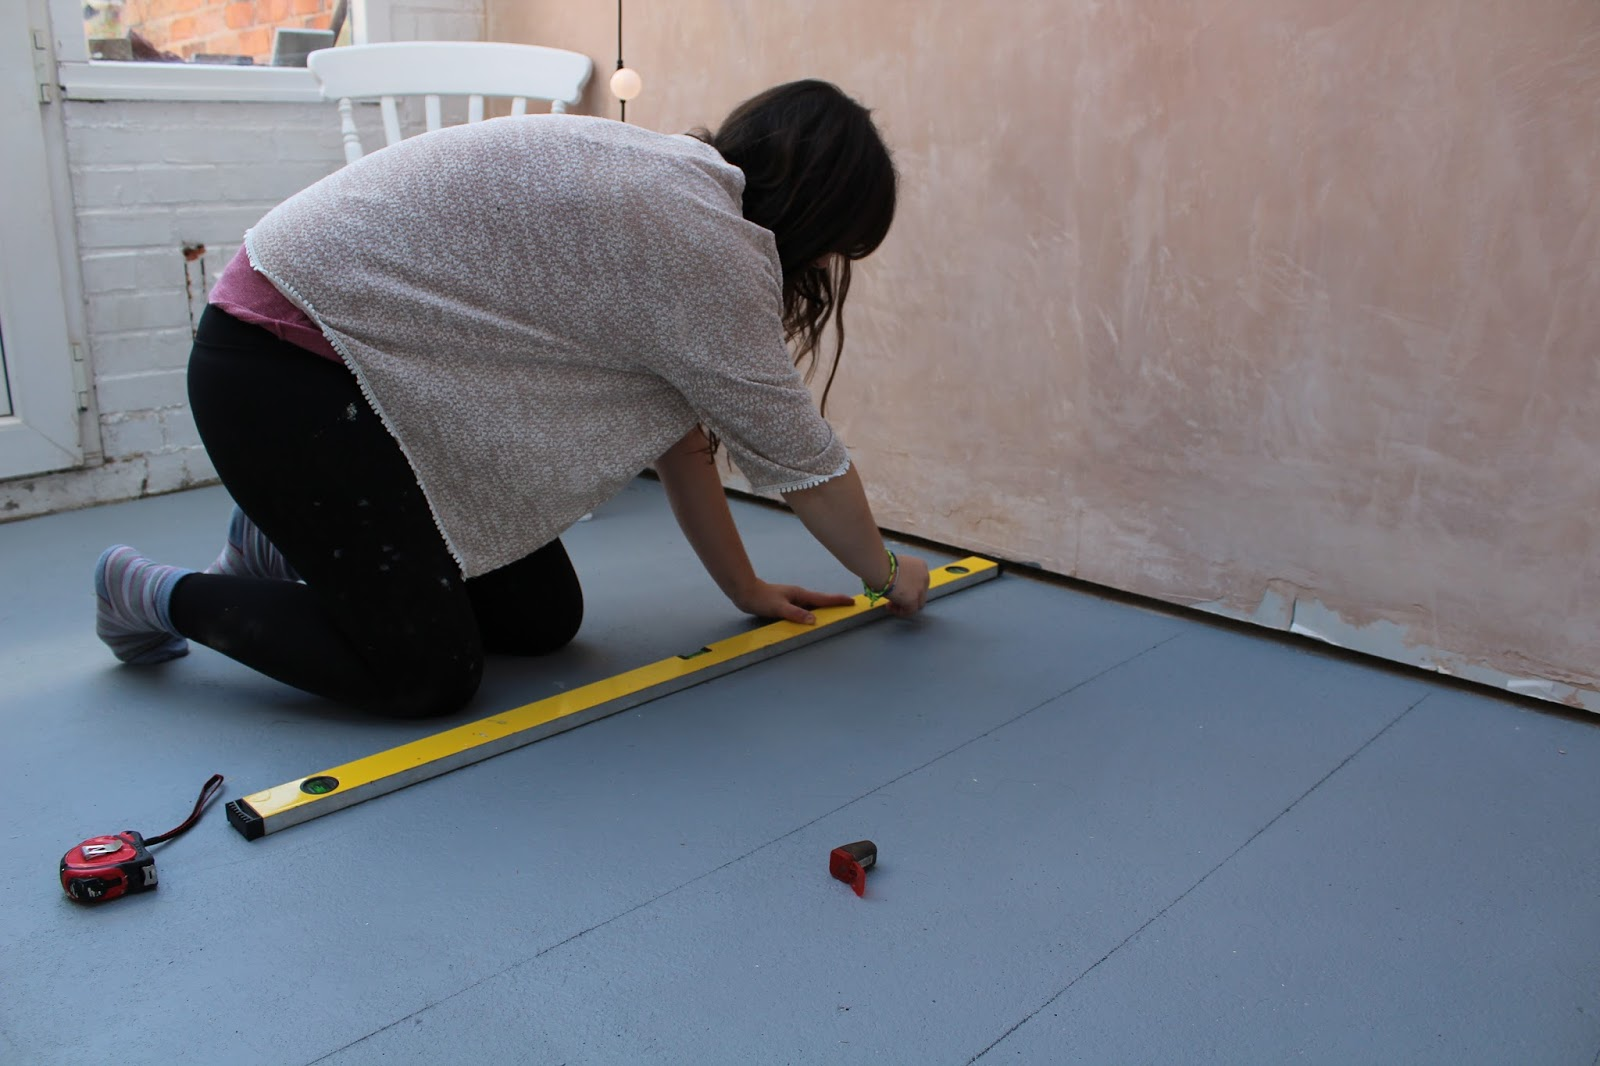 Painting a pattern on the floor